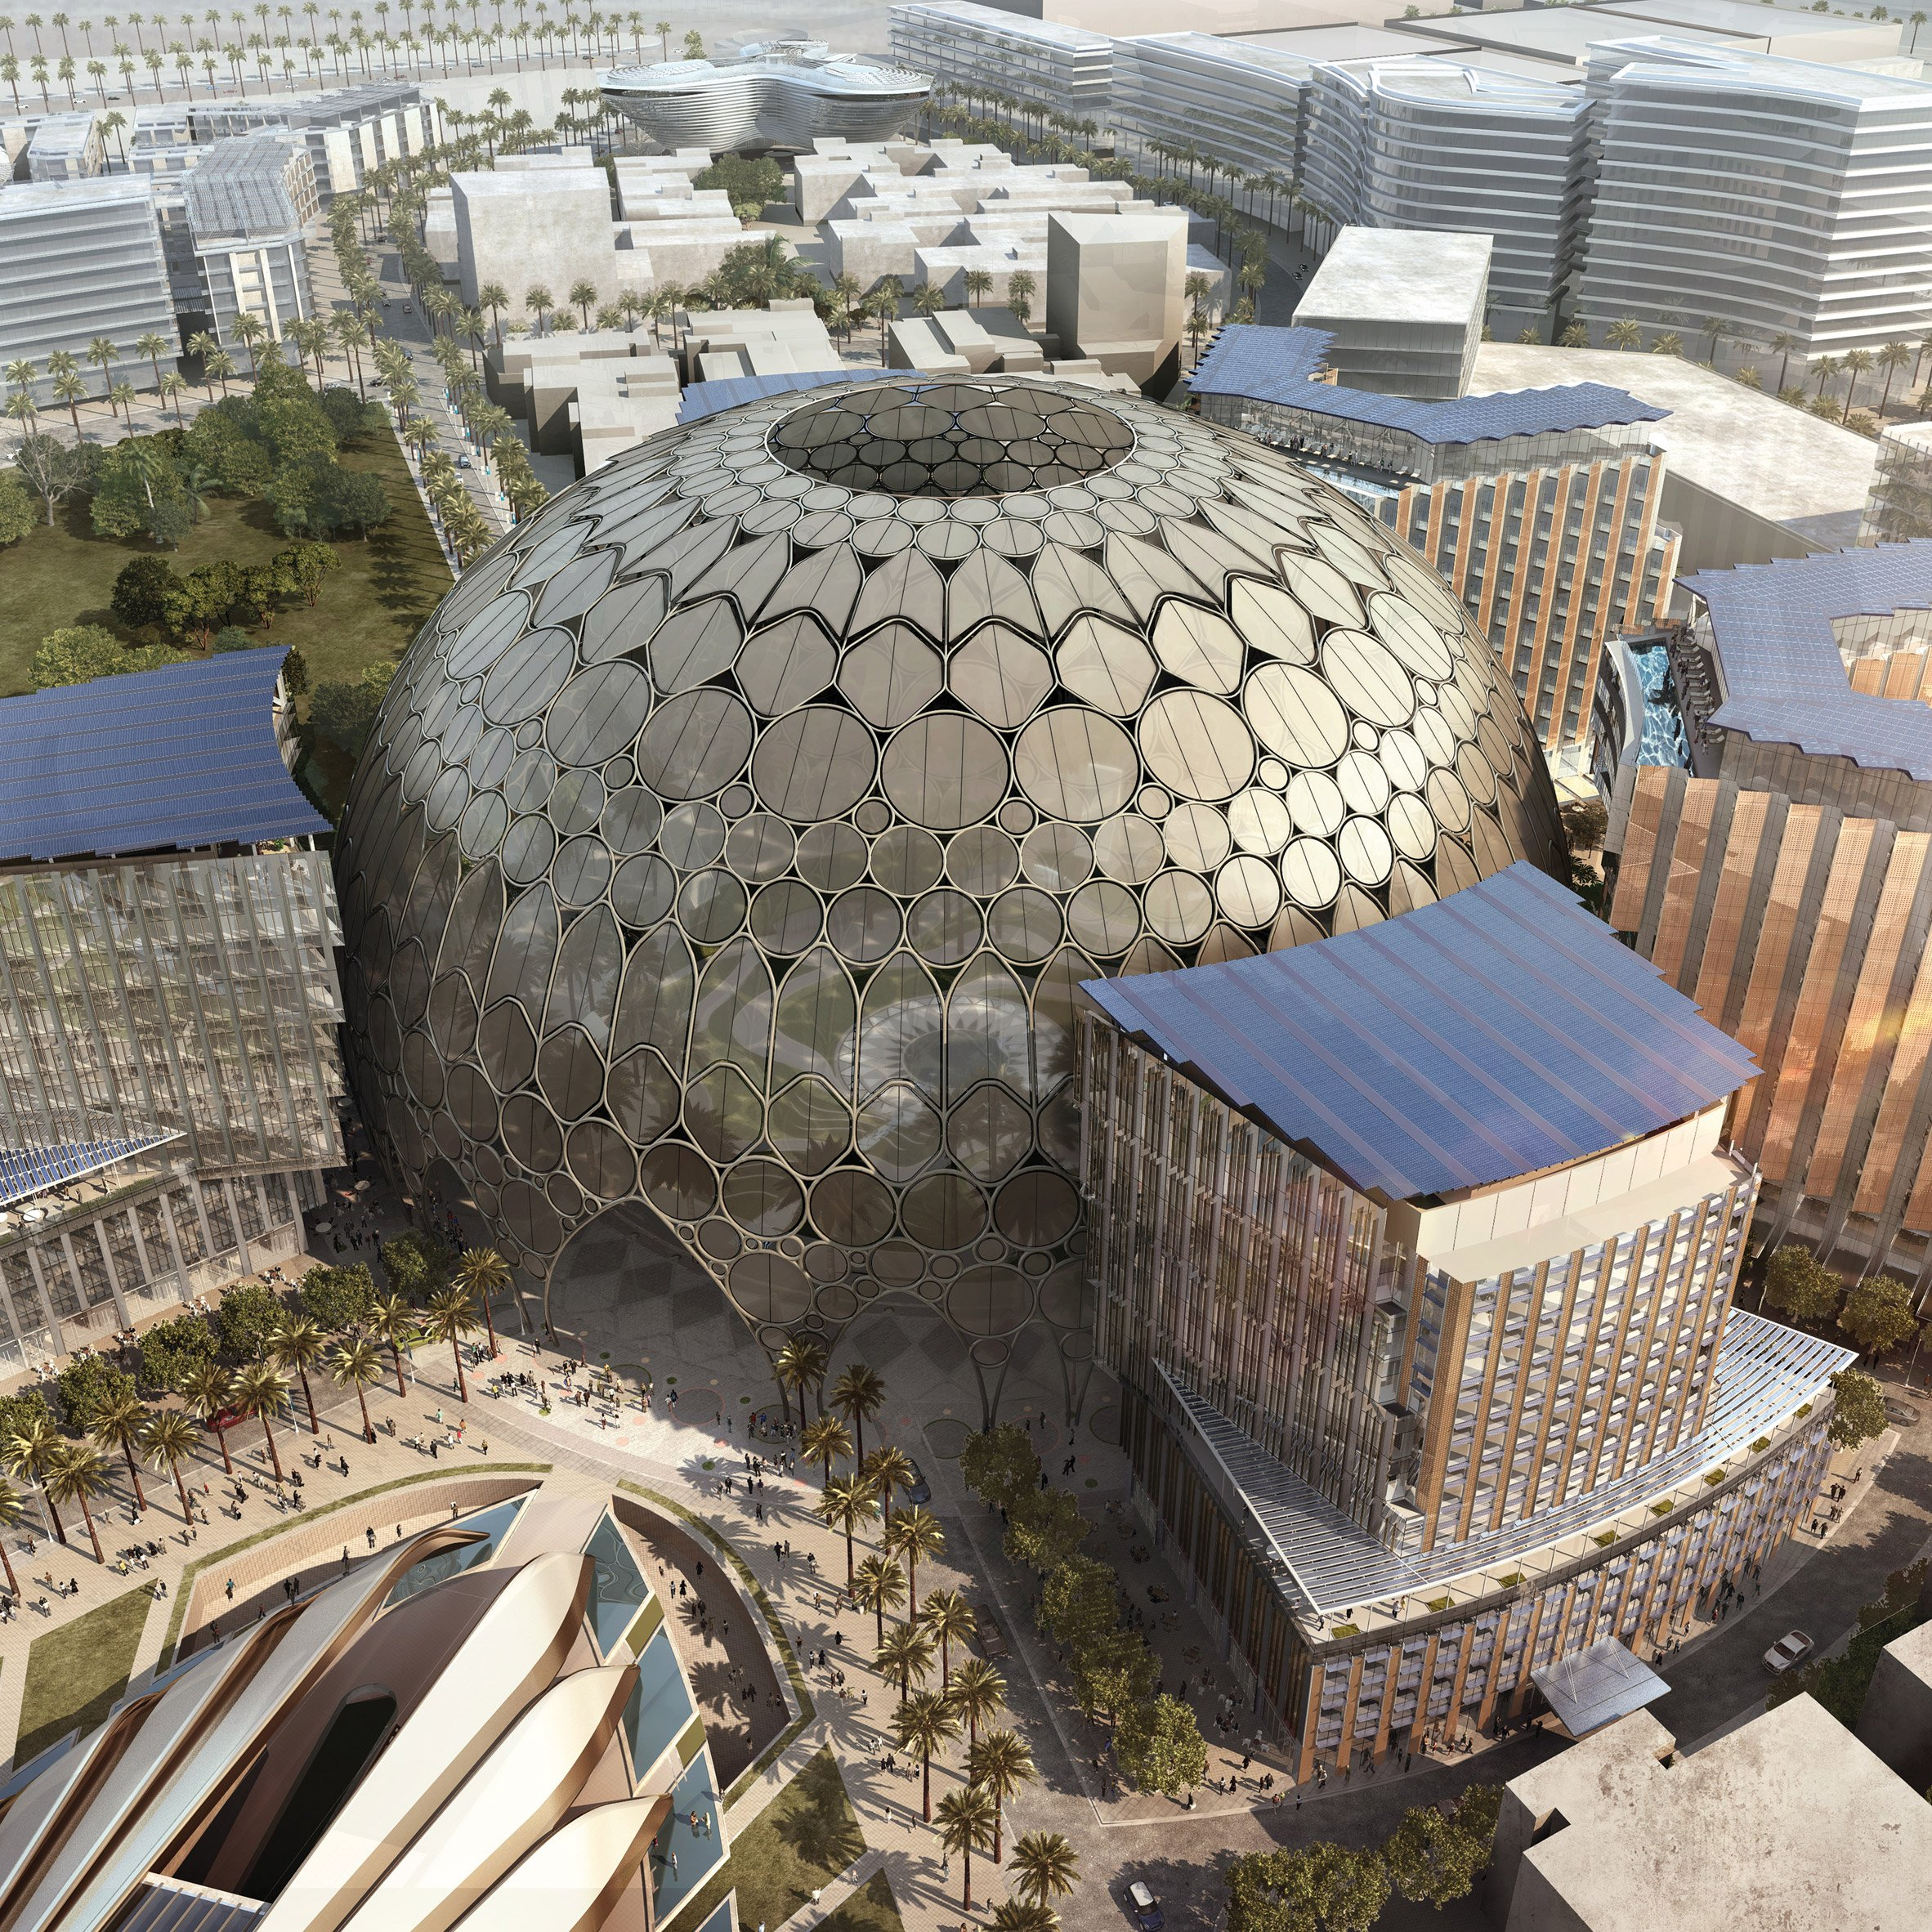 Spherical architecture: Al Wasl Plaza at Dubai Expo 2020, by Adrian Smith+Gordon Gill